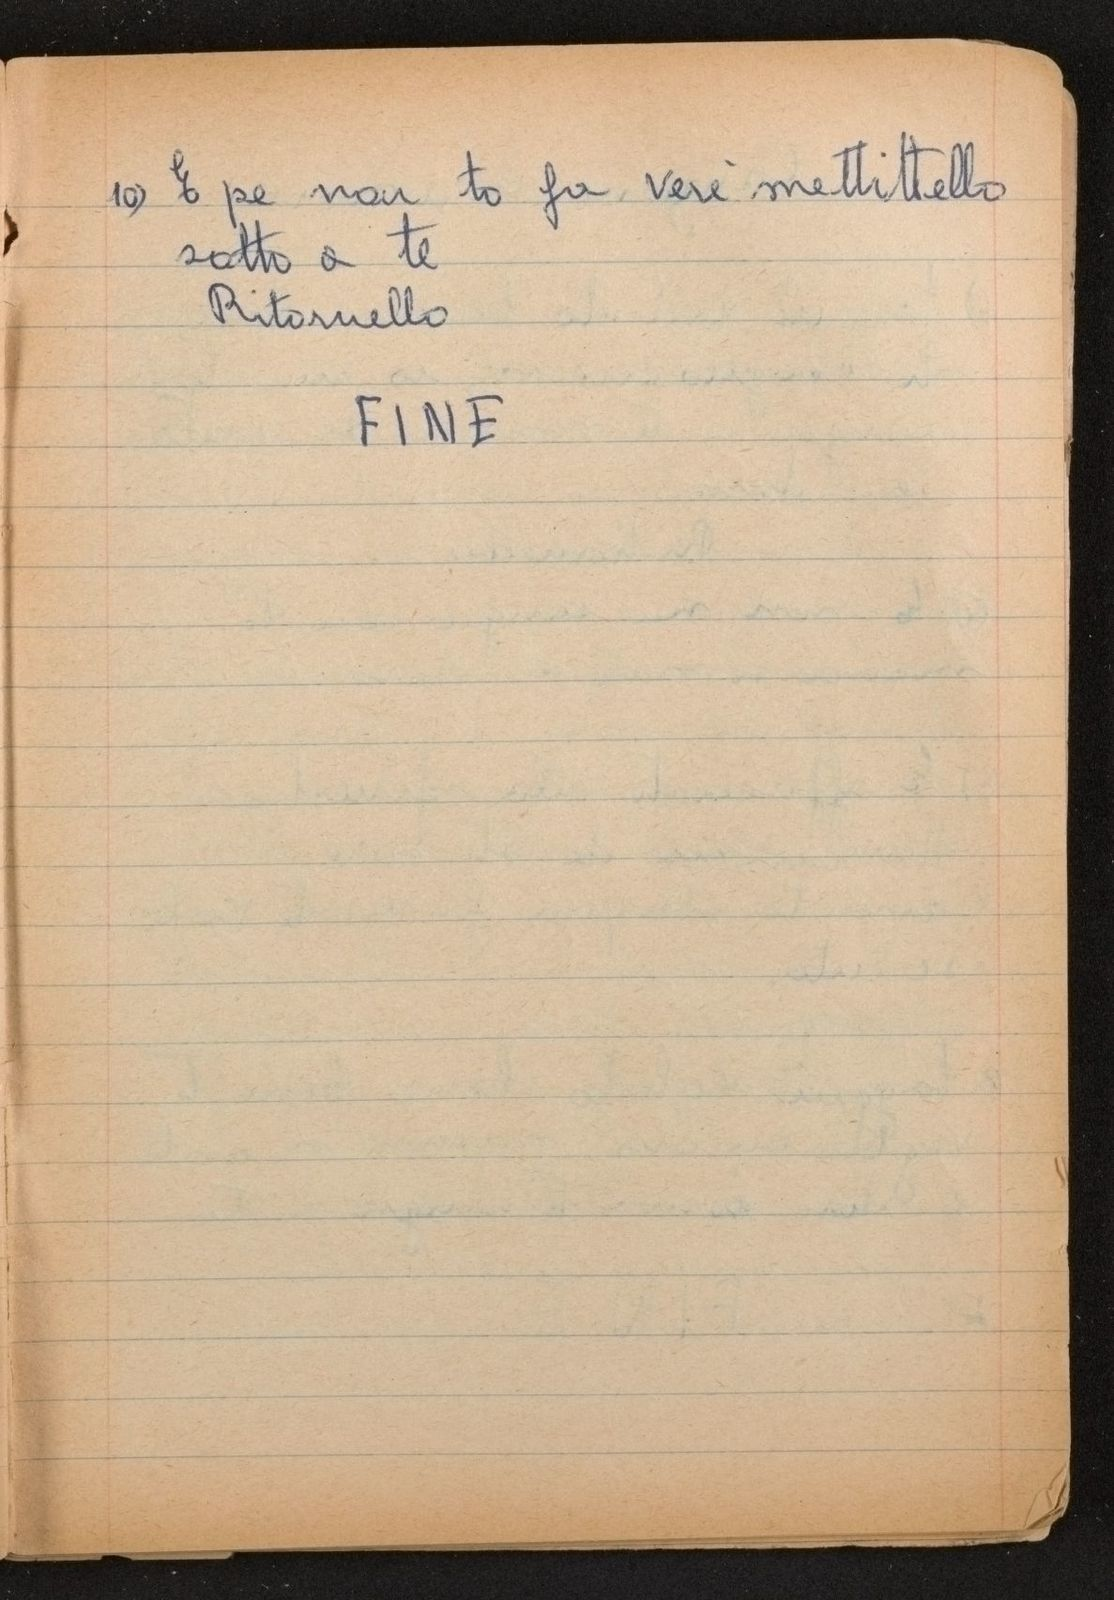 Alan Lomax Collection, Manuscripts, Italy, 1954-1955